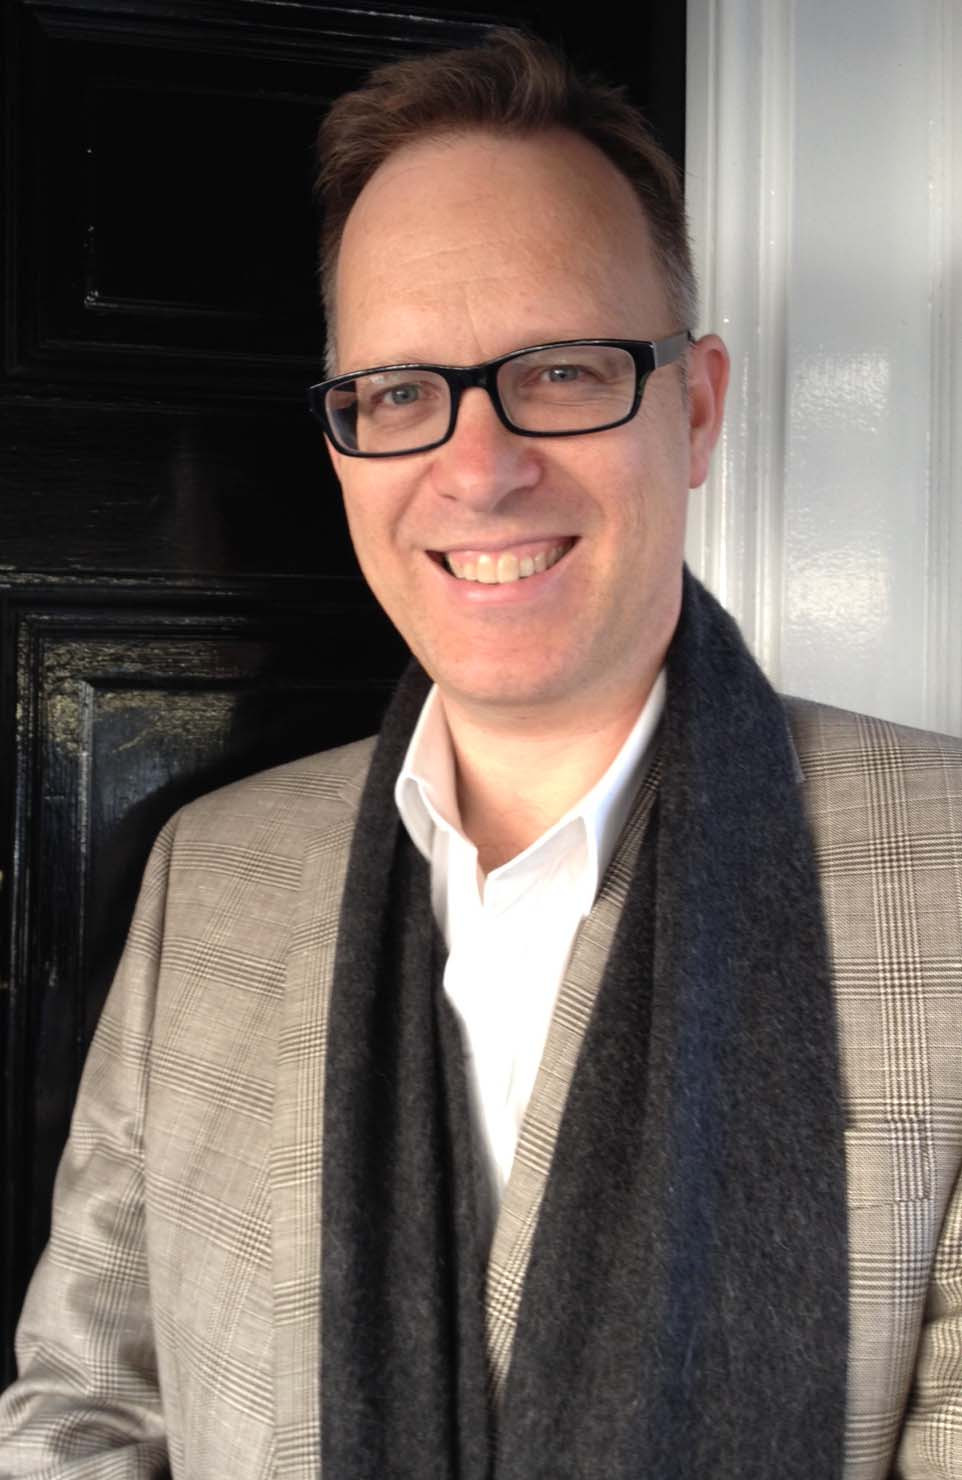 Garth Nix, image used with permission from Harper Collins